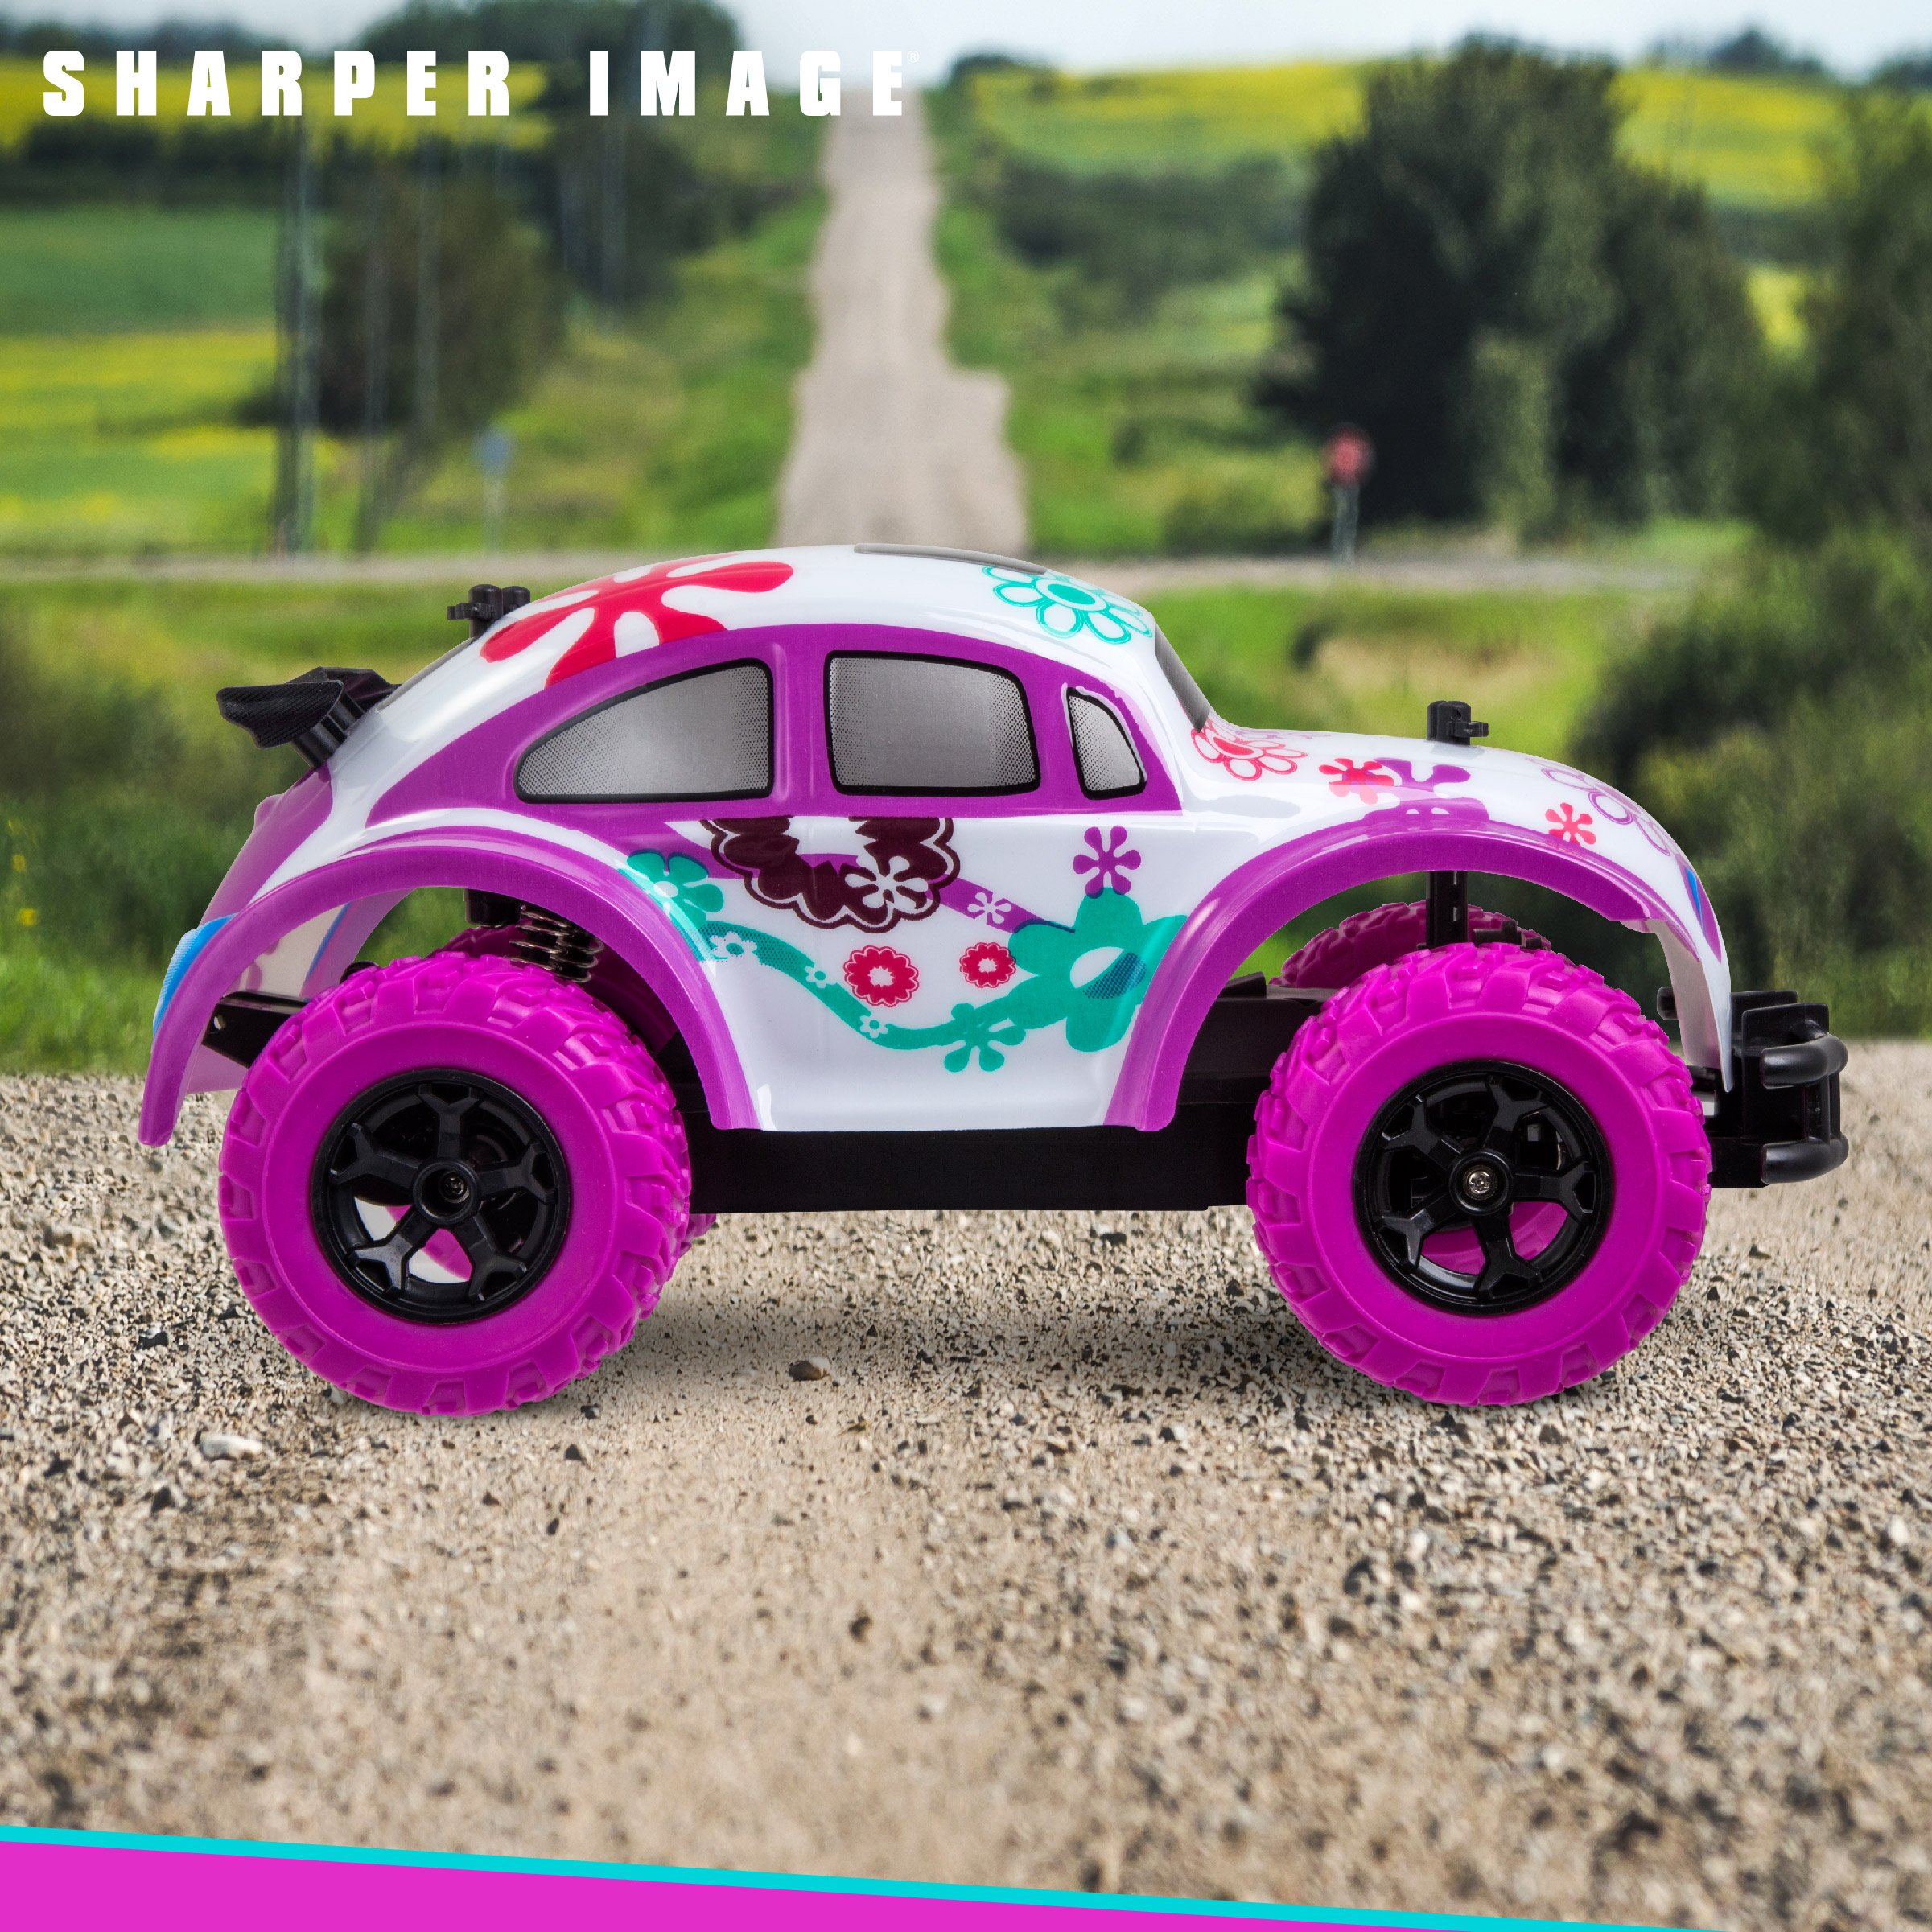 SHARPER IMAGE Pixie Cruiser Pink and Purple RC Remote Control Car Toy for Girls with Off-Road Grip Tires; Princess Style Big Buggy Crawler w/ Flowers Design and Shocks, Race Up to 5 MPH, Ages 6 Year + by Sharper Image (Image #6)